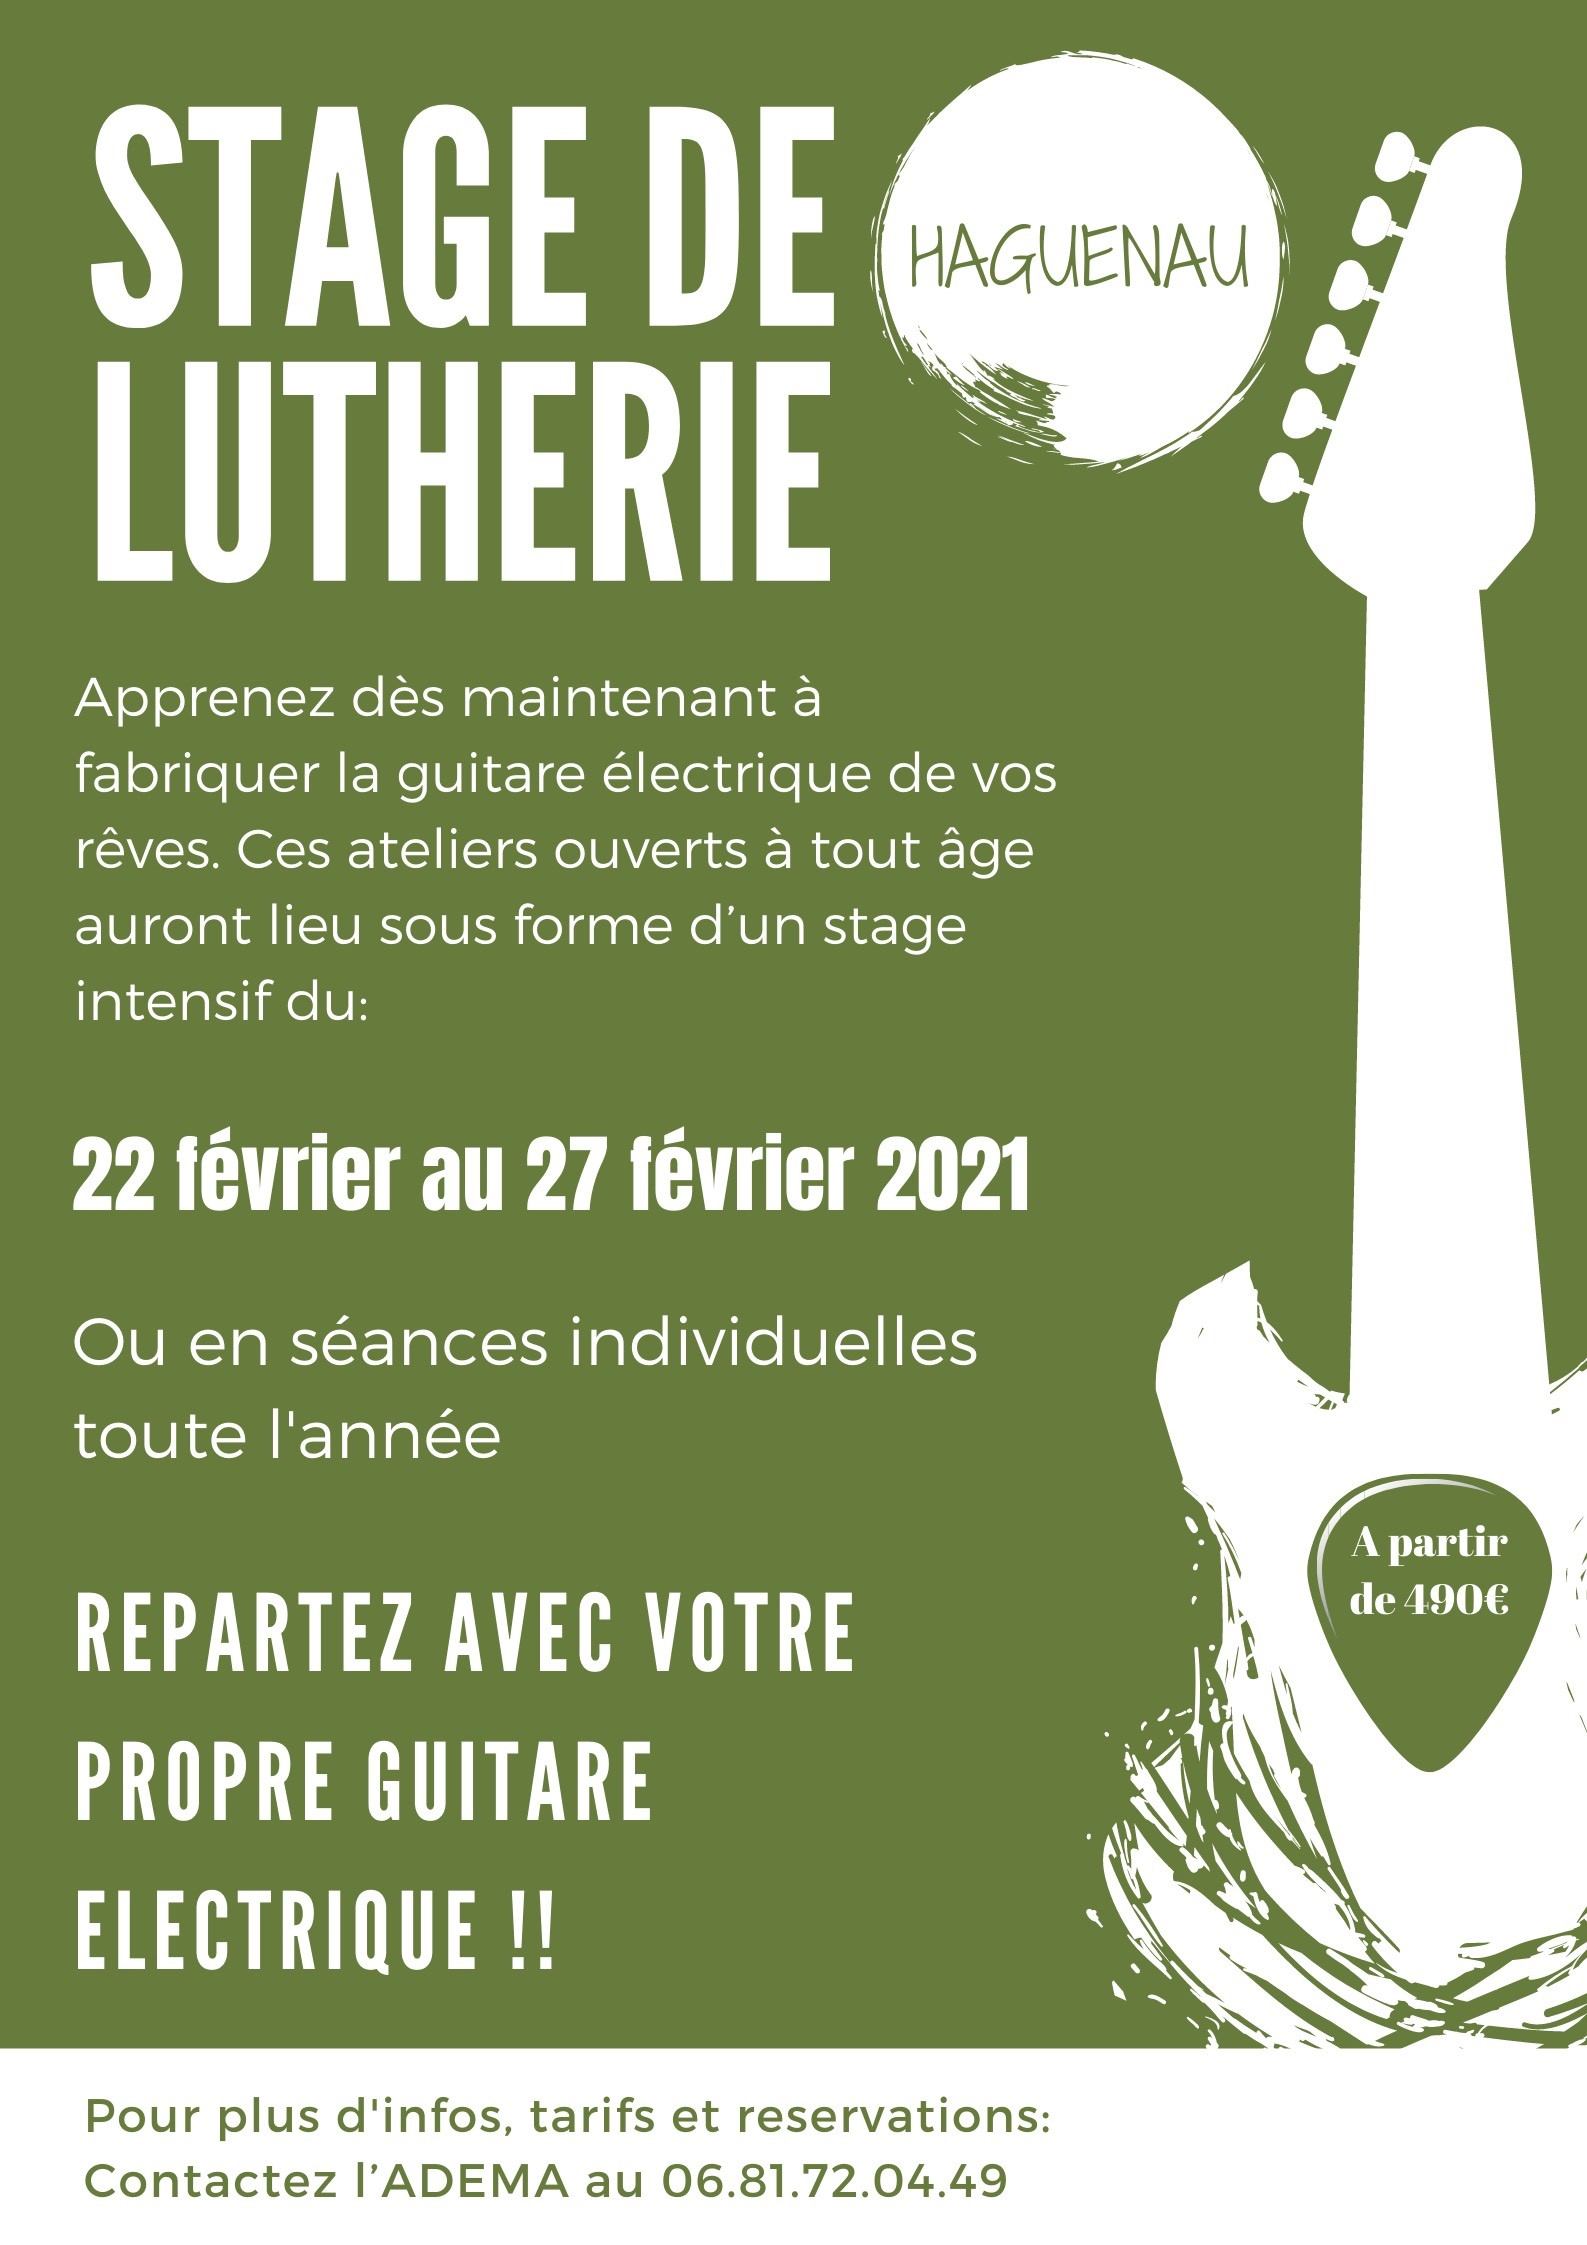 Stage de lutherie